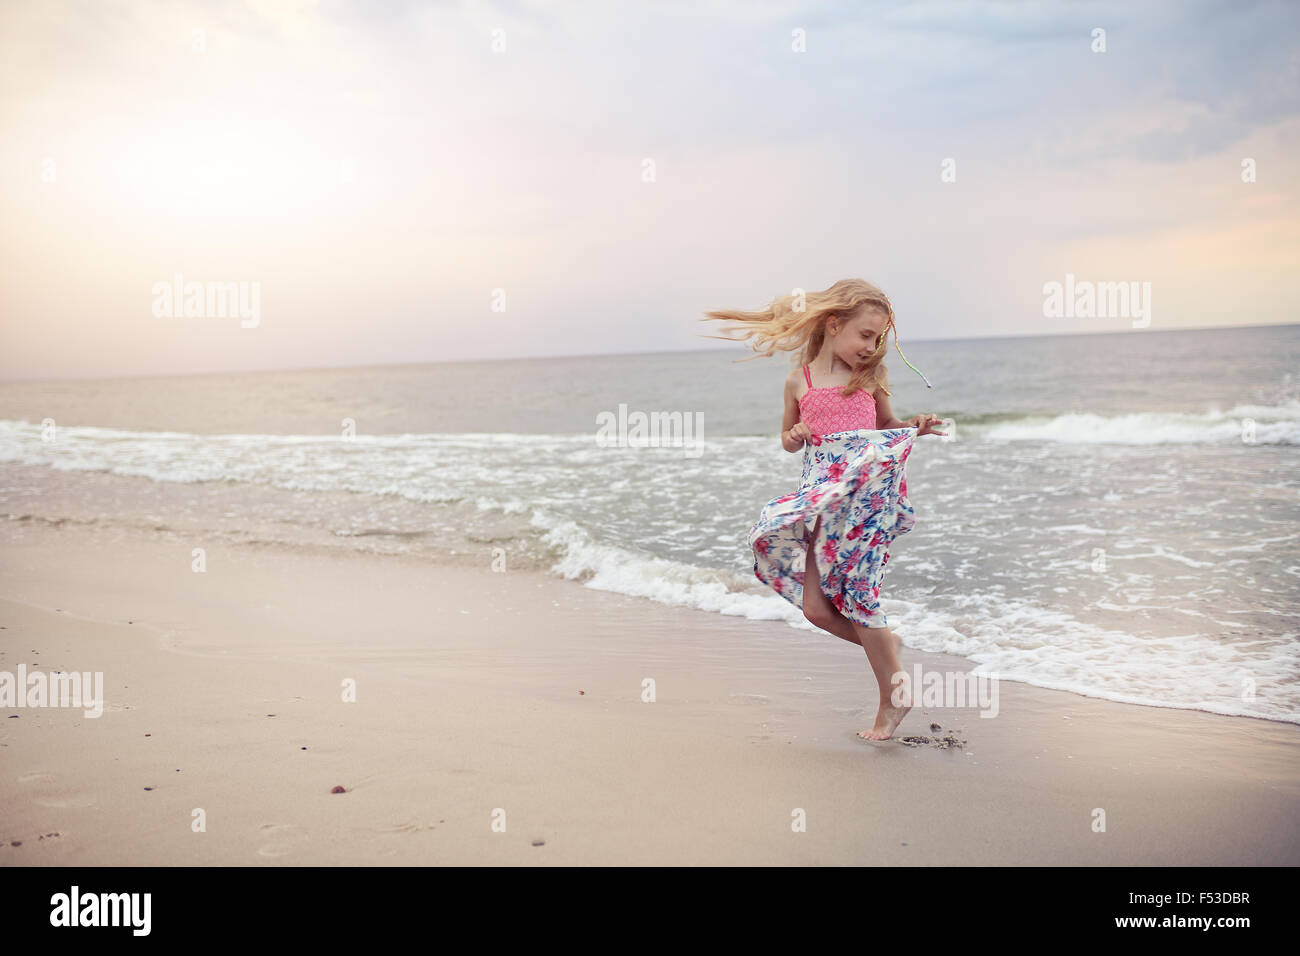 freedom and flexibility - carefree childhood - Stock Image